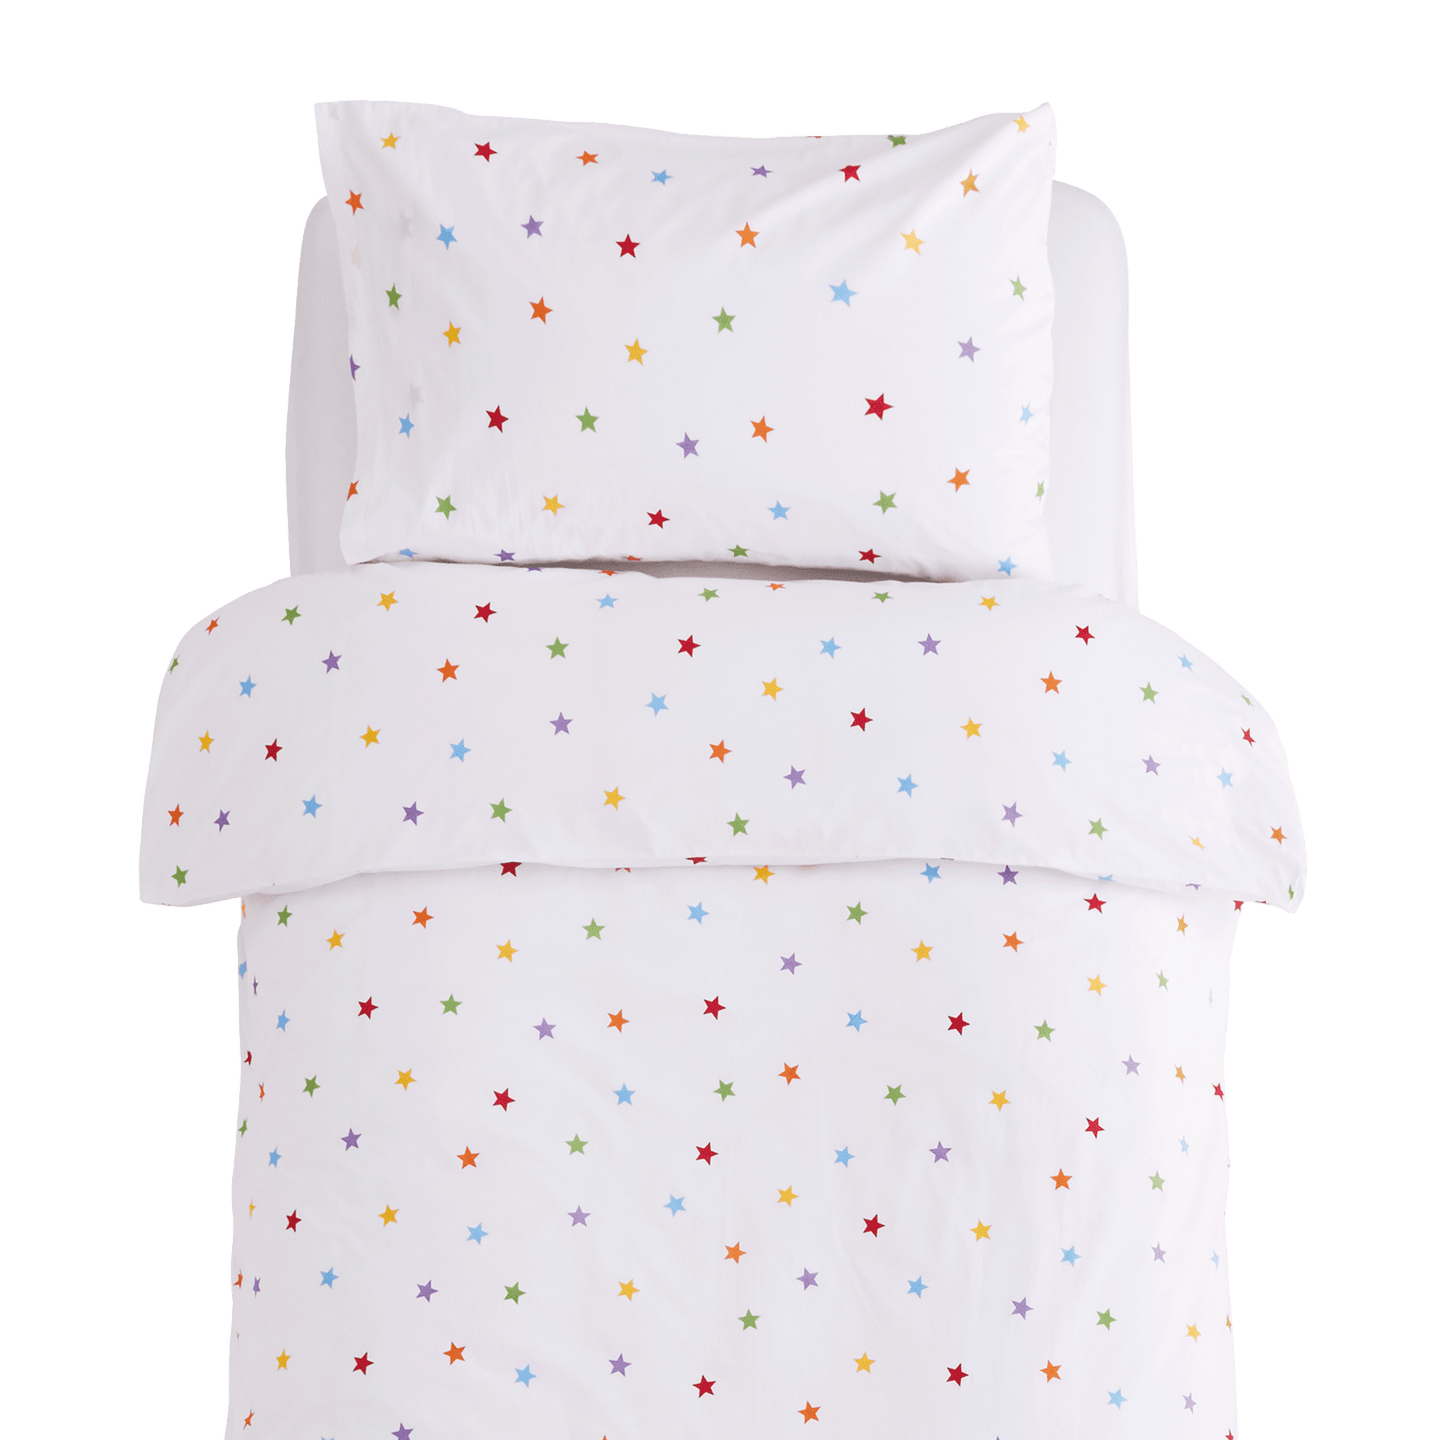 Rainbow Stardust Duvet Cover Set - Single